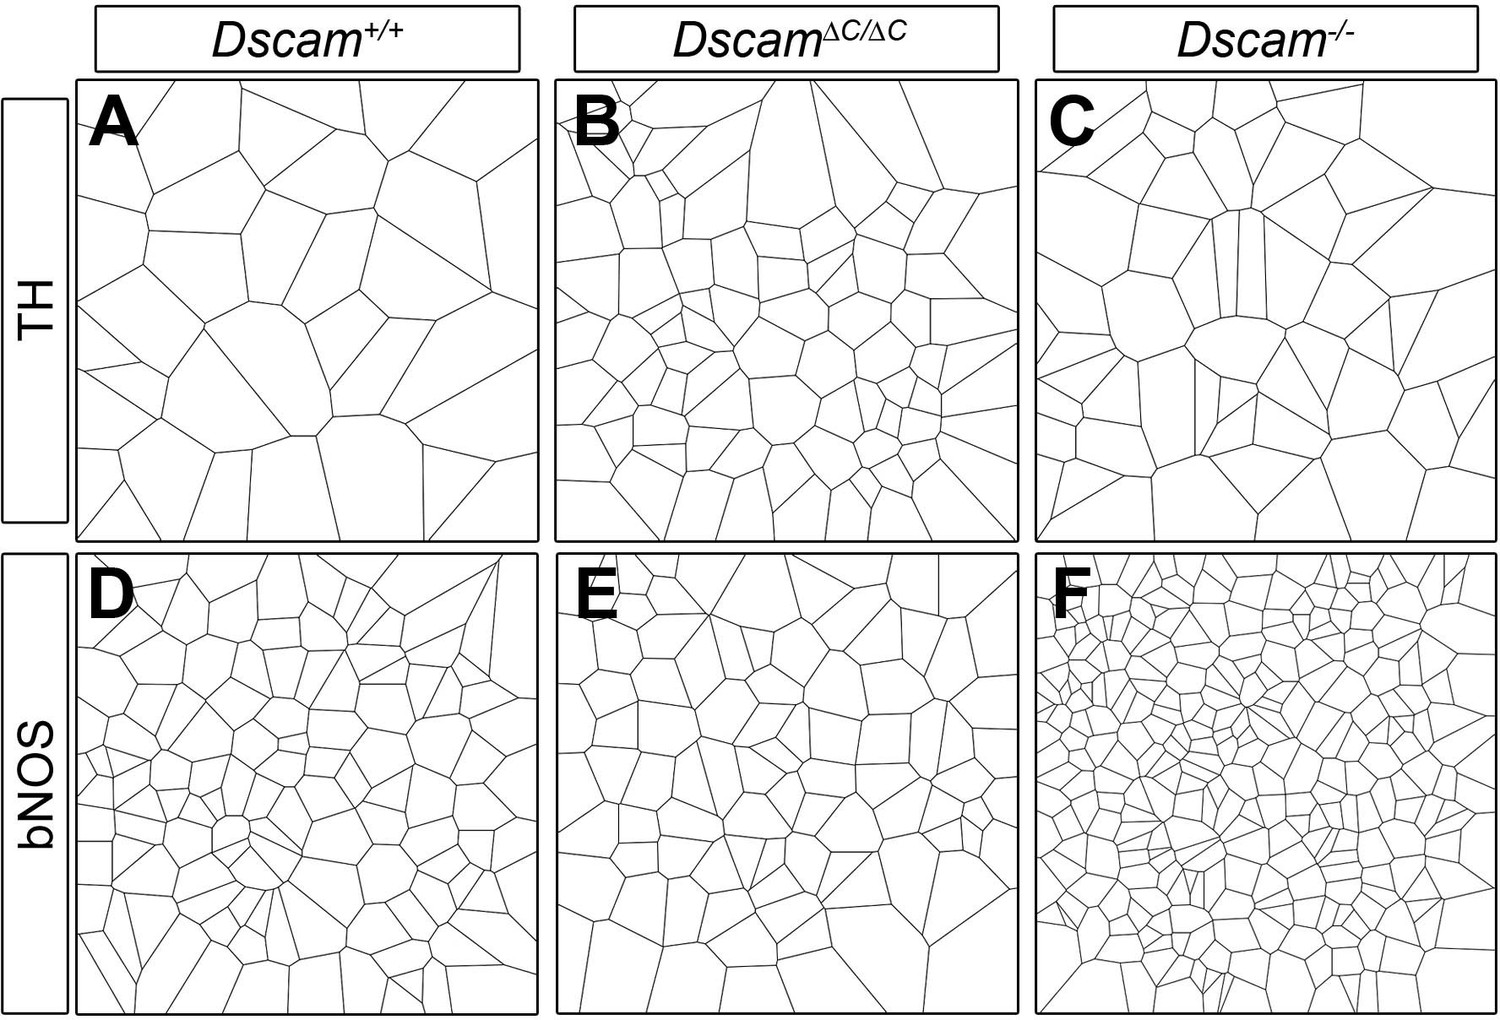 Replacing The Pdz Interacting C Termini Of Dscam And Dscaml1 With Garrett Ace 250 Wiring Diagram Examples Voronoi Tessellation Domains In Mutants